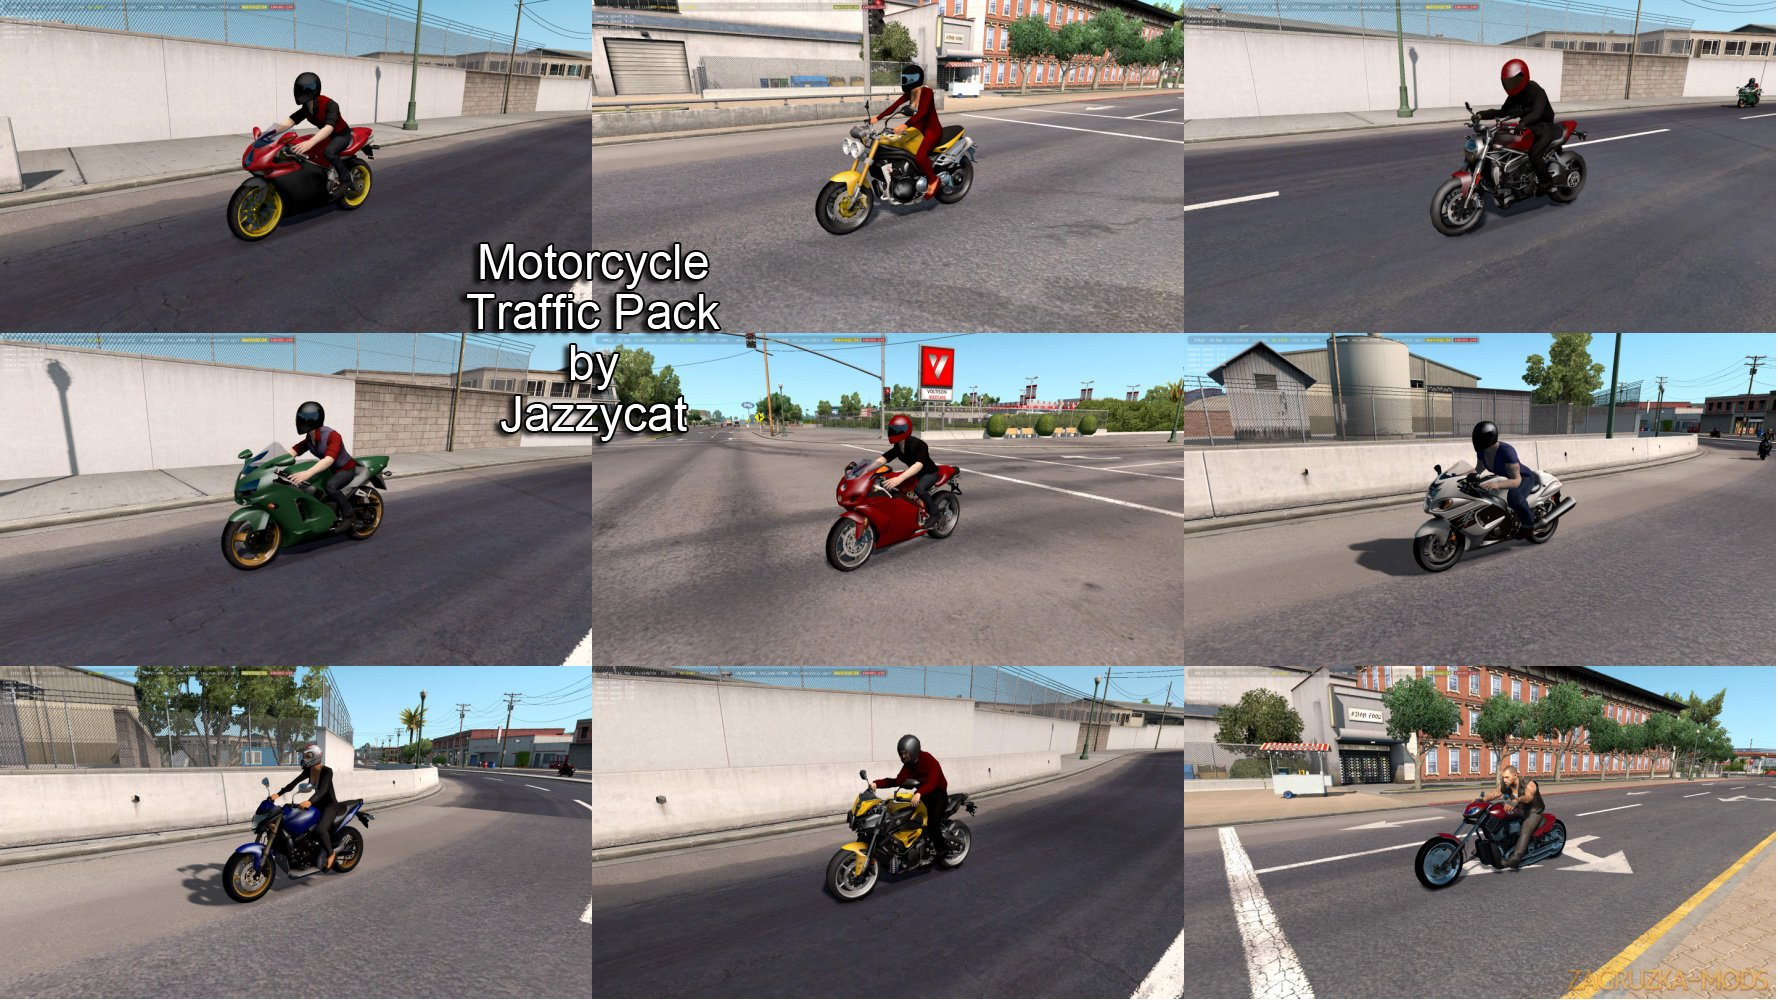 Motorcycle Traffic Pack v1.0 by Jazzycat